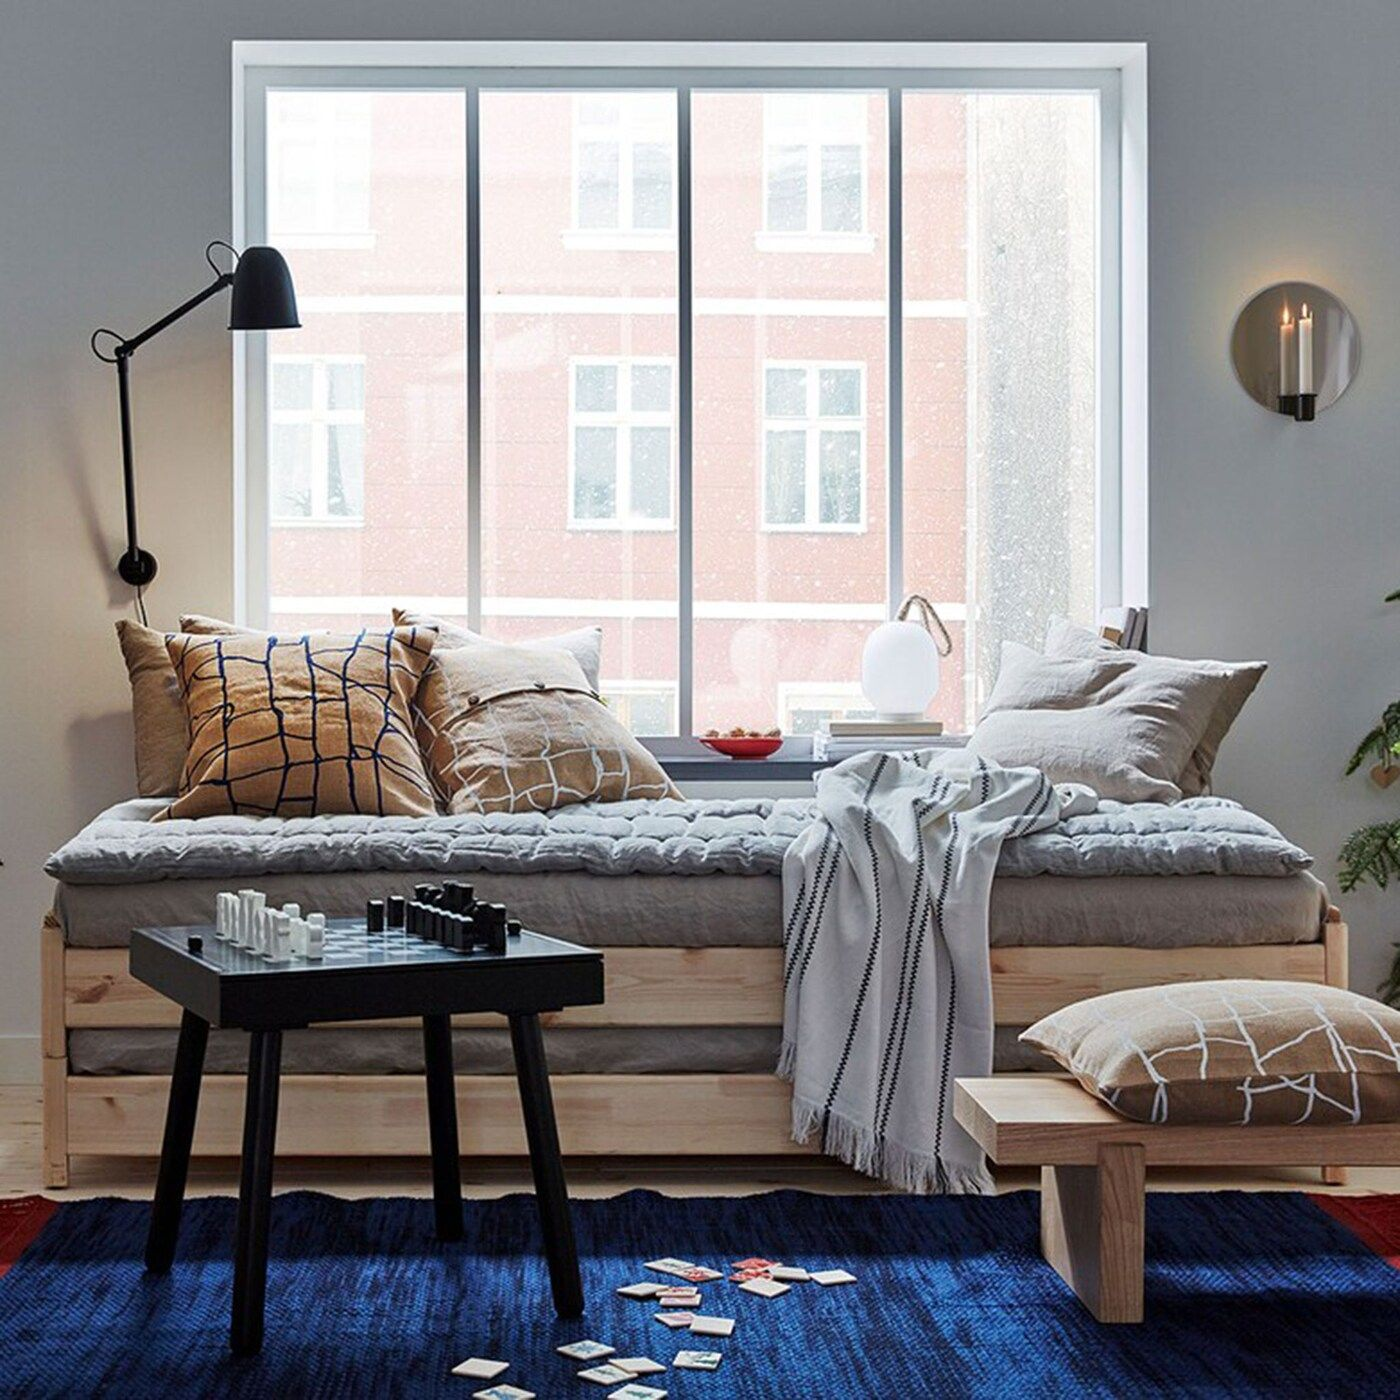 New products and collections Ikea new, Boys room decor